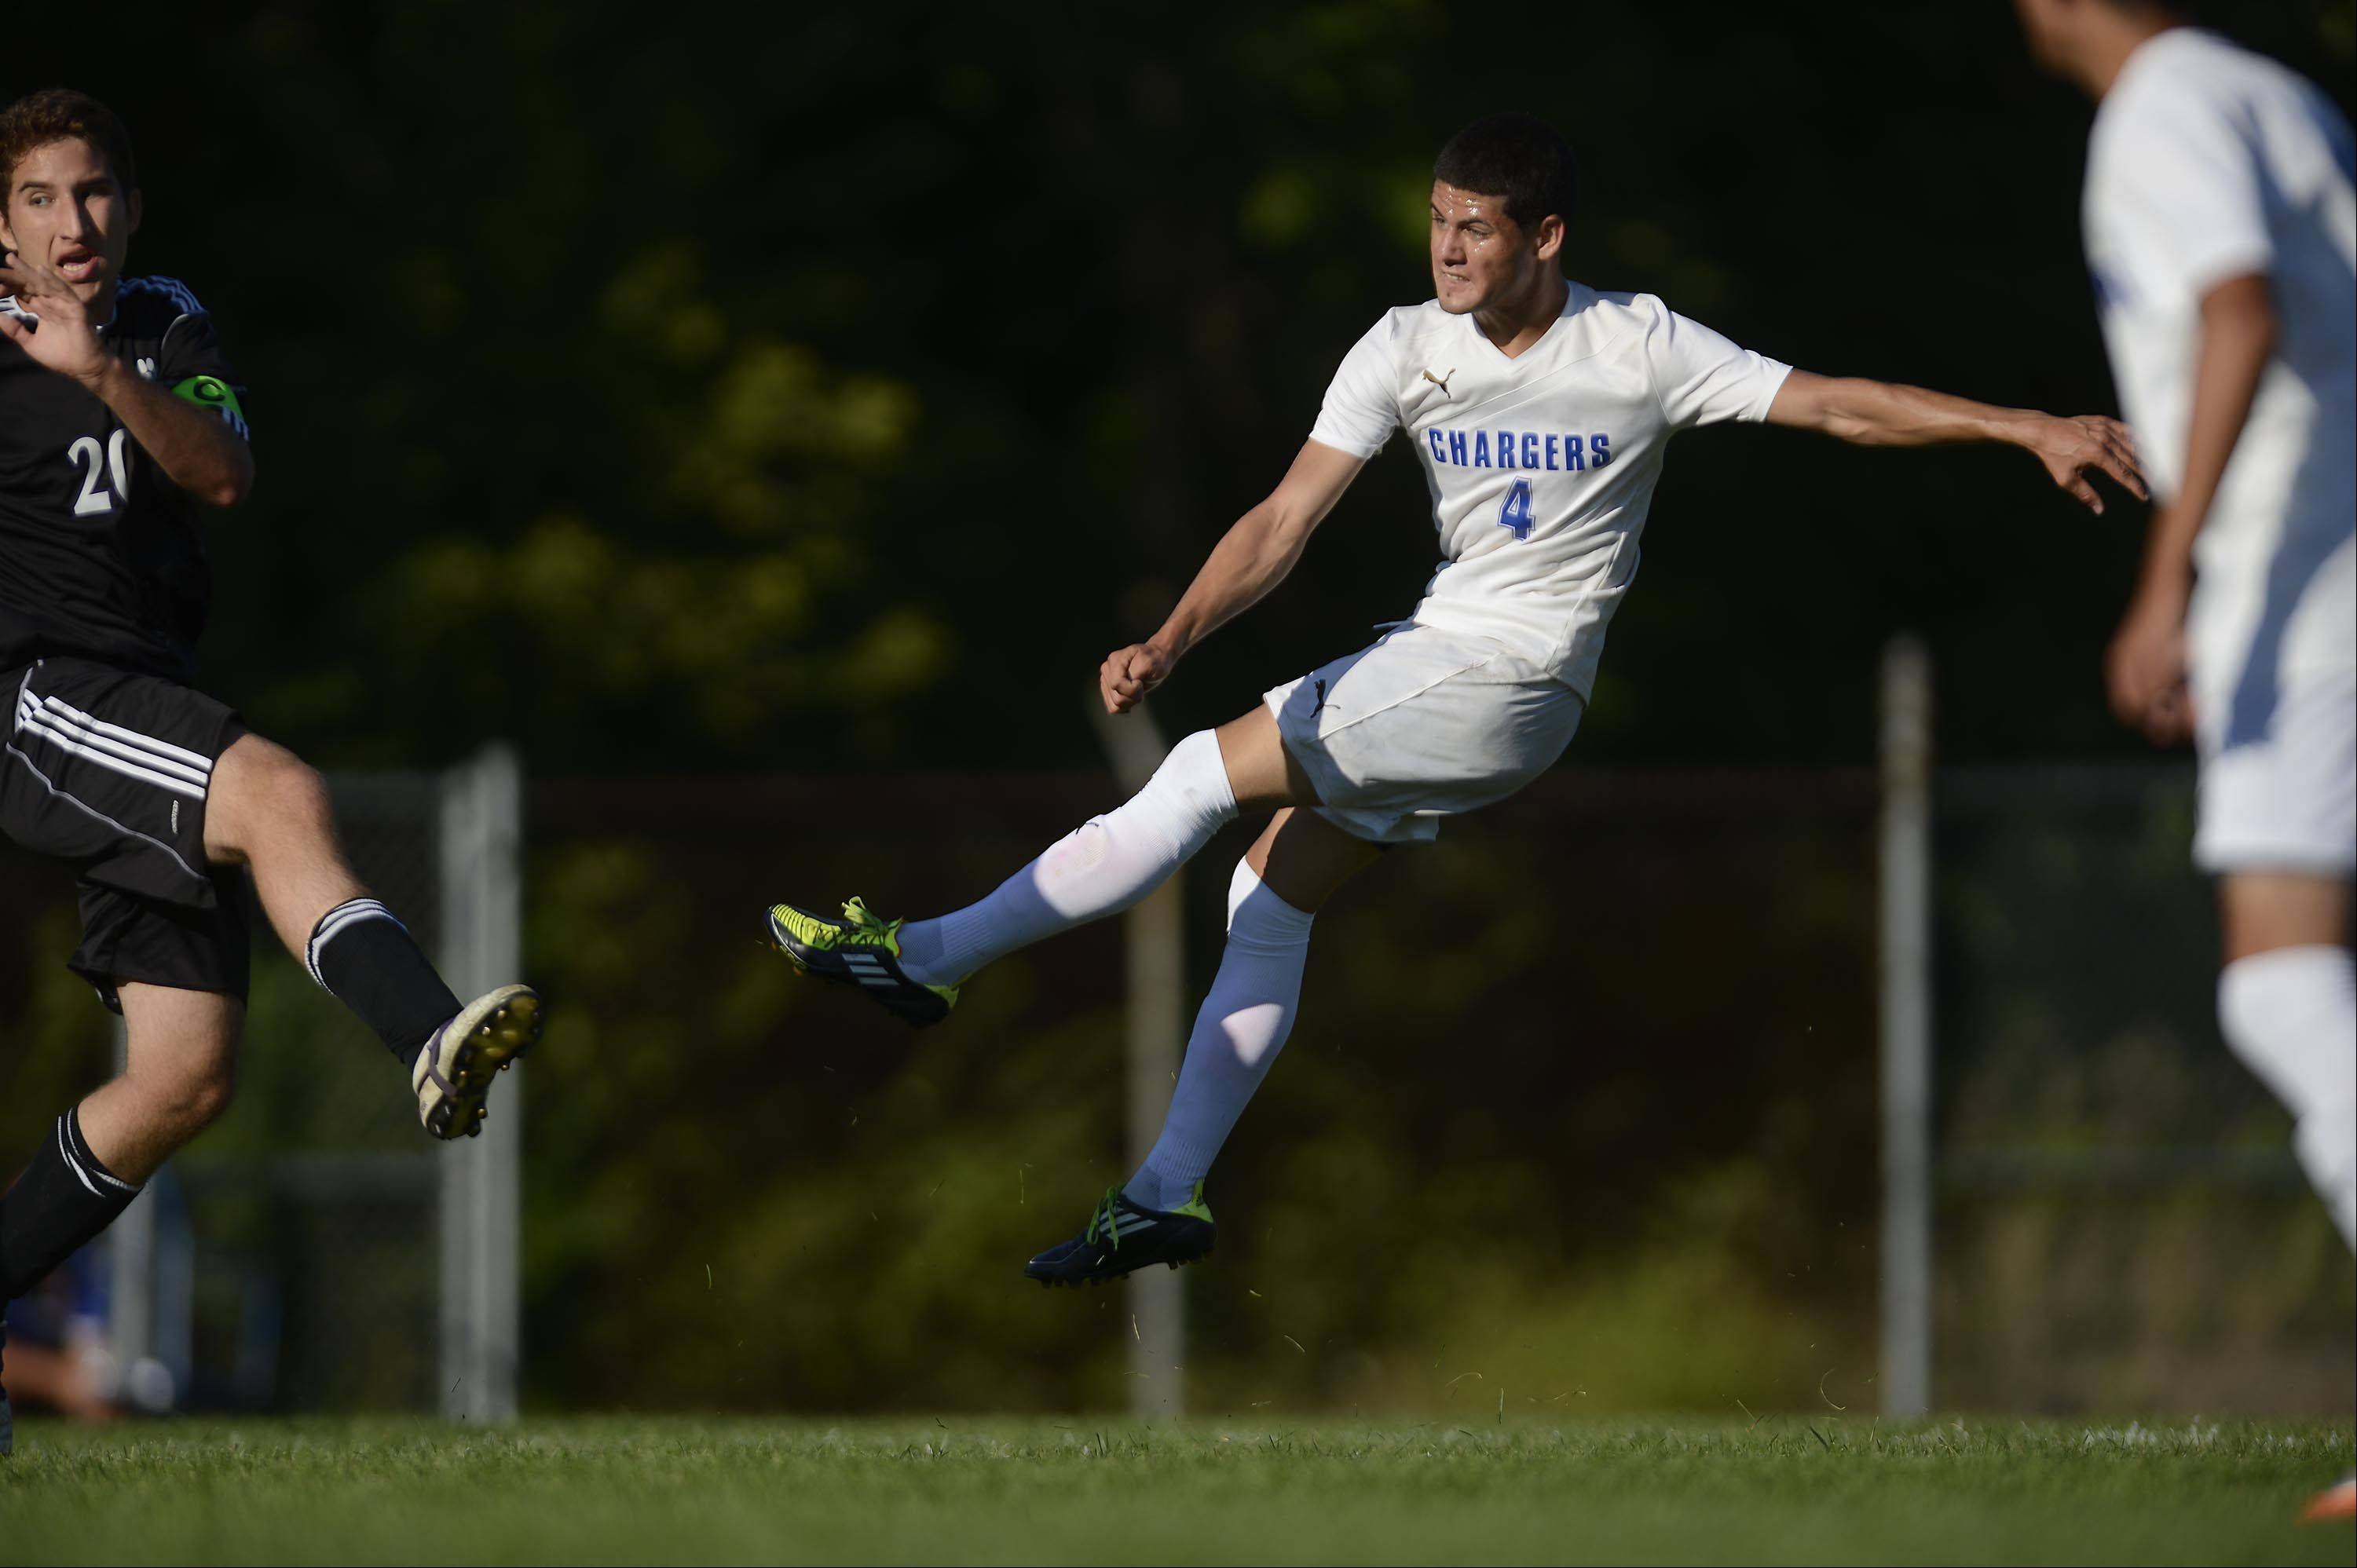 Dundee-Crown�s Eduardo Arellano watches his first half goal against Hampshire Thursday in Carpentersville.